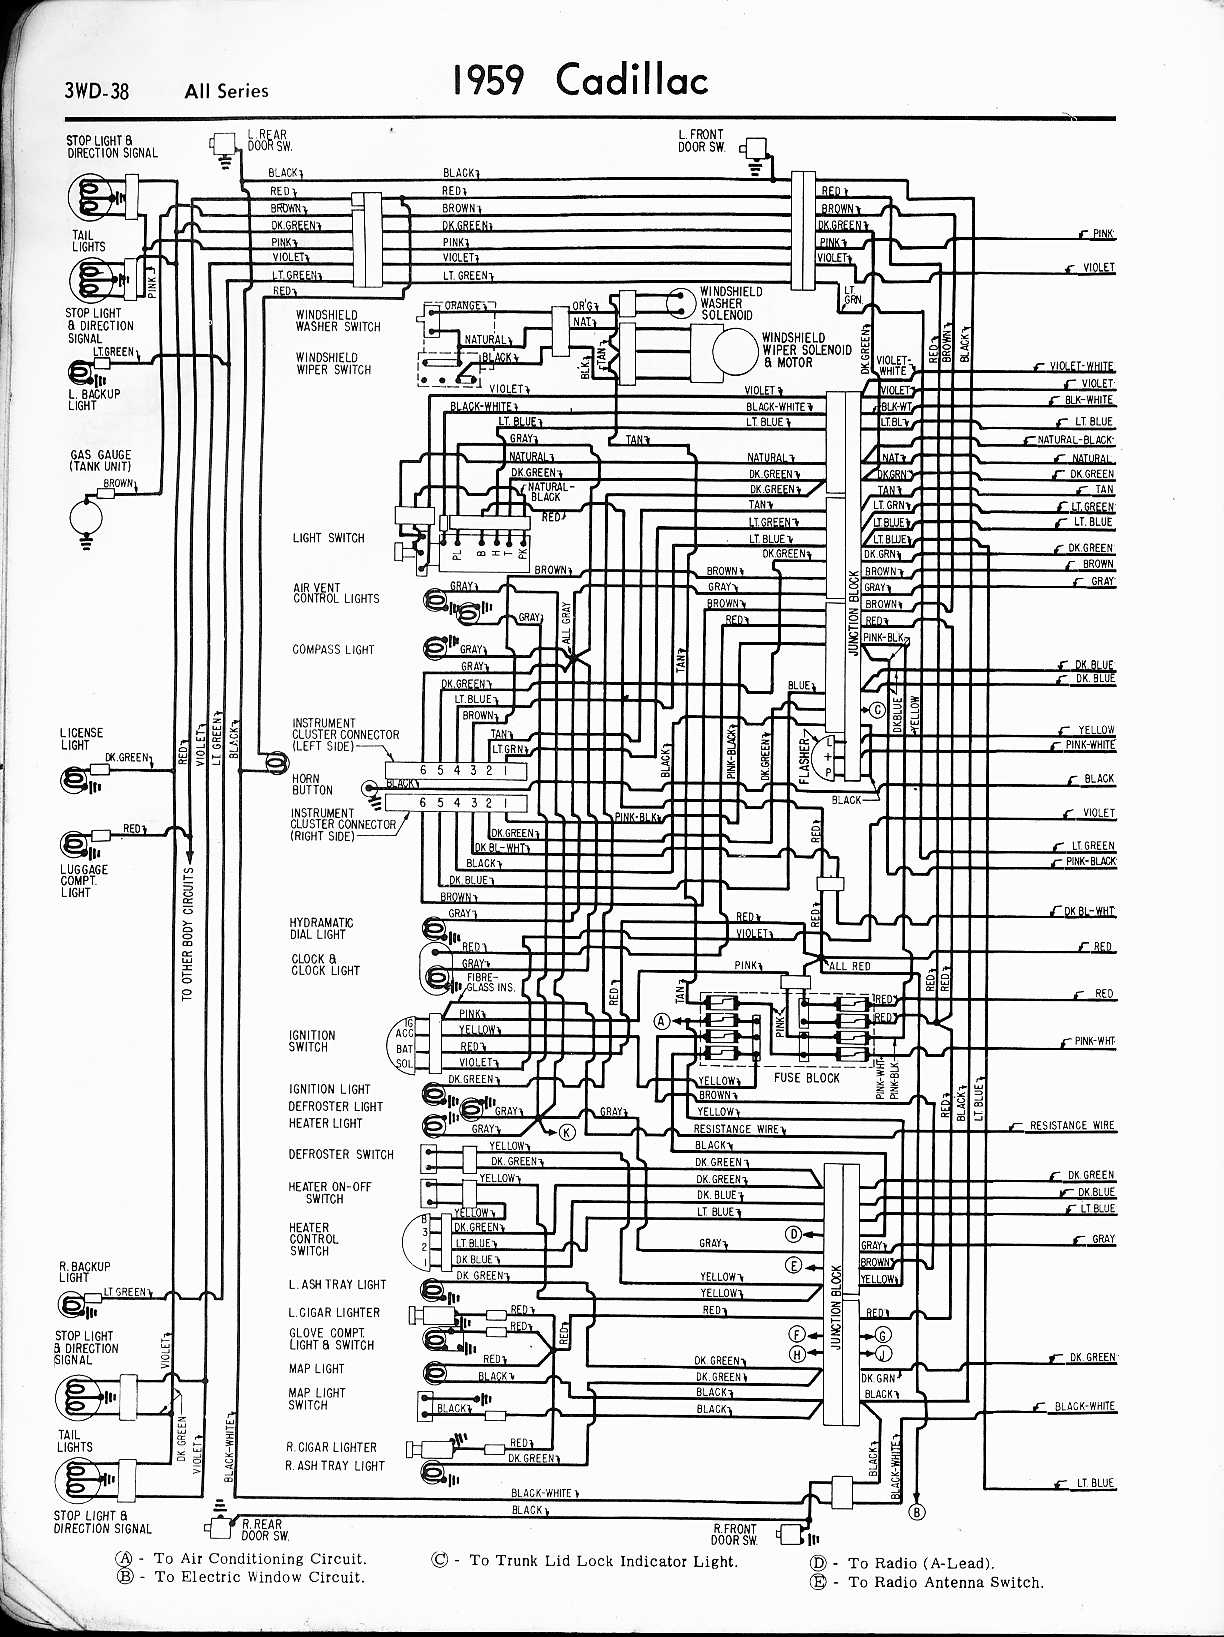 1968 Vw Beetle Wiring Diagram Charging System Free In Addition Further Electrical Images Gallery